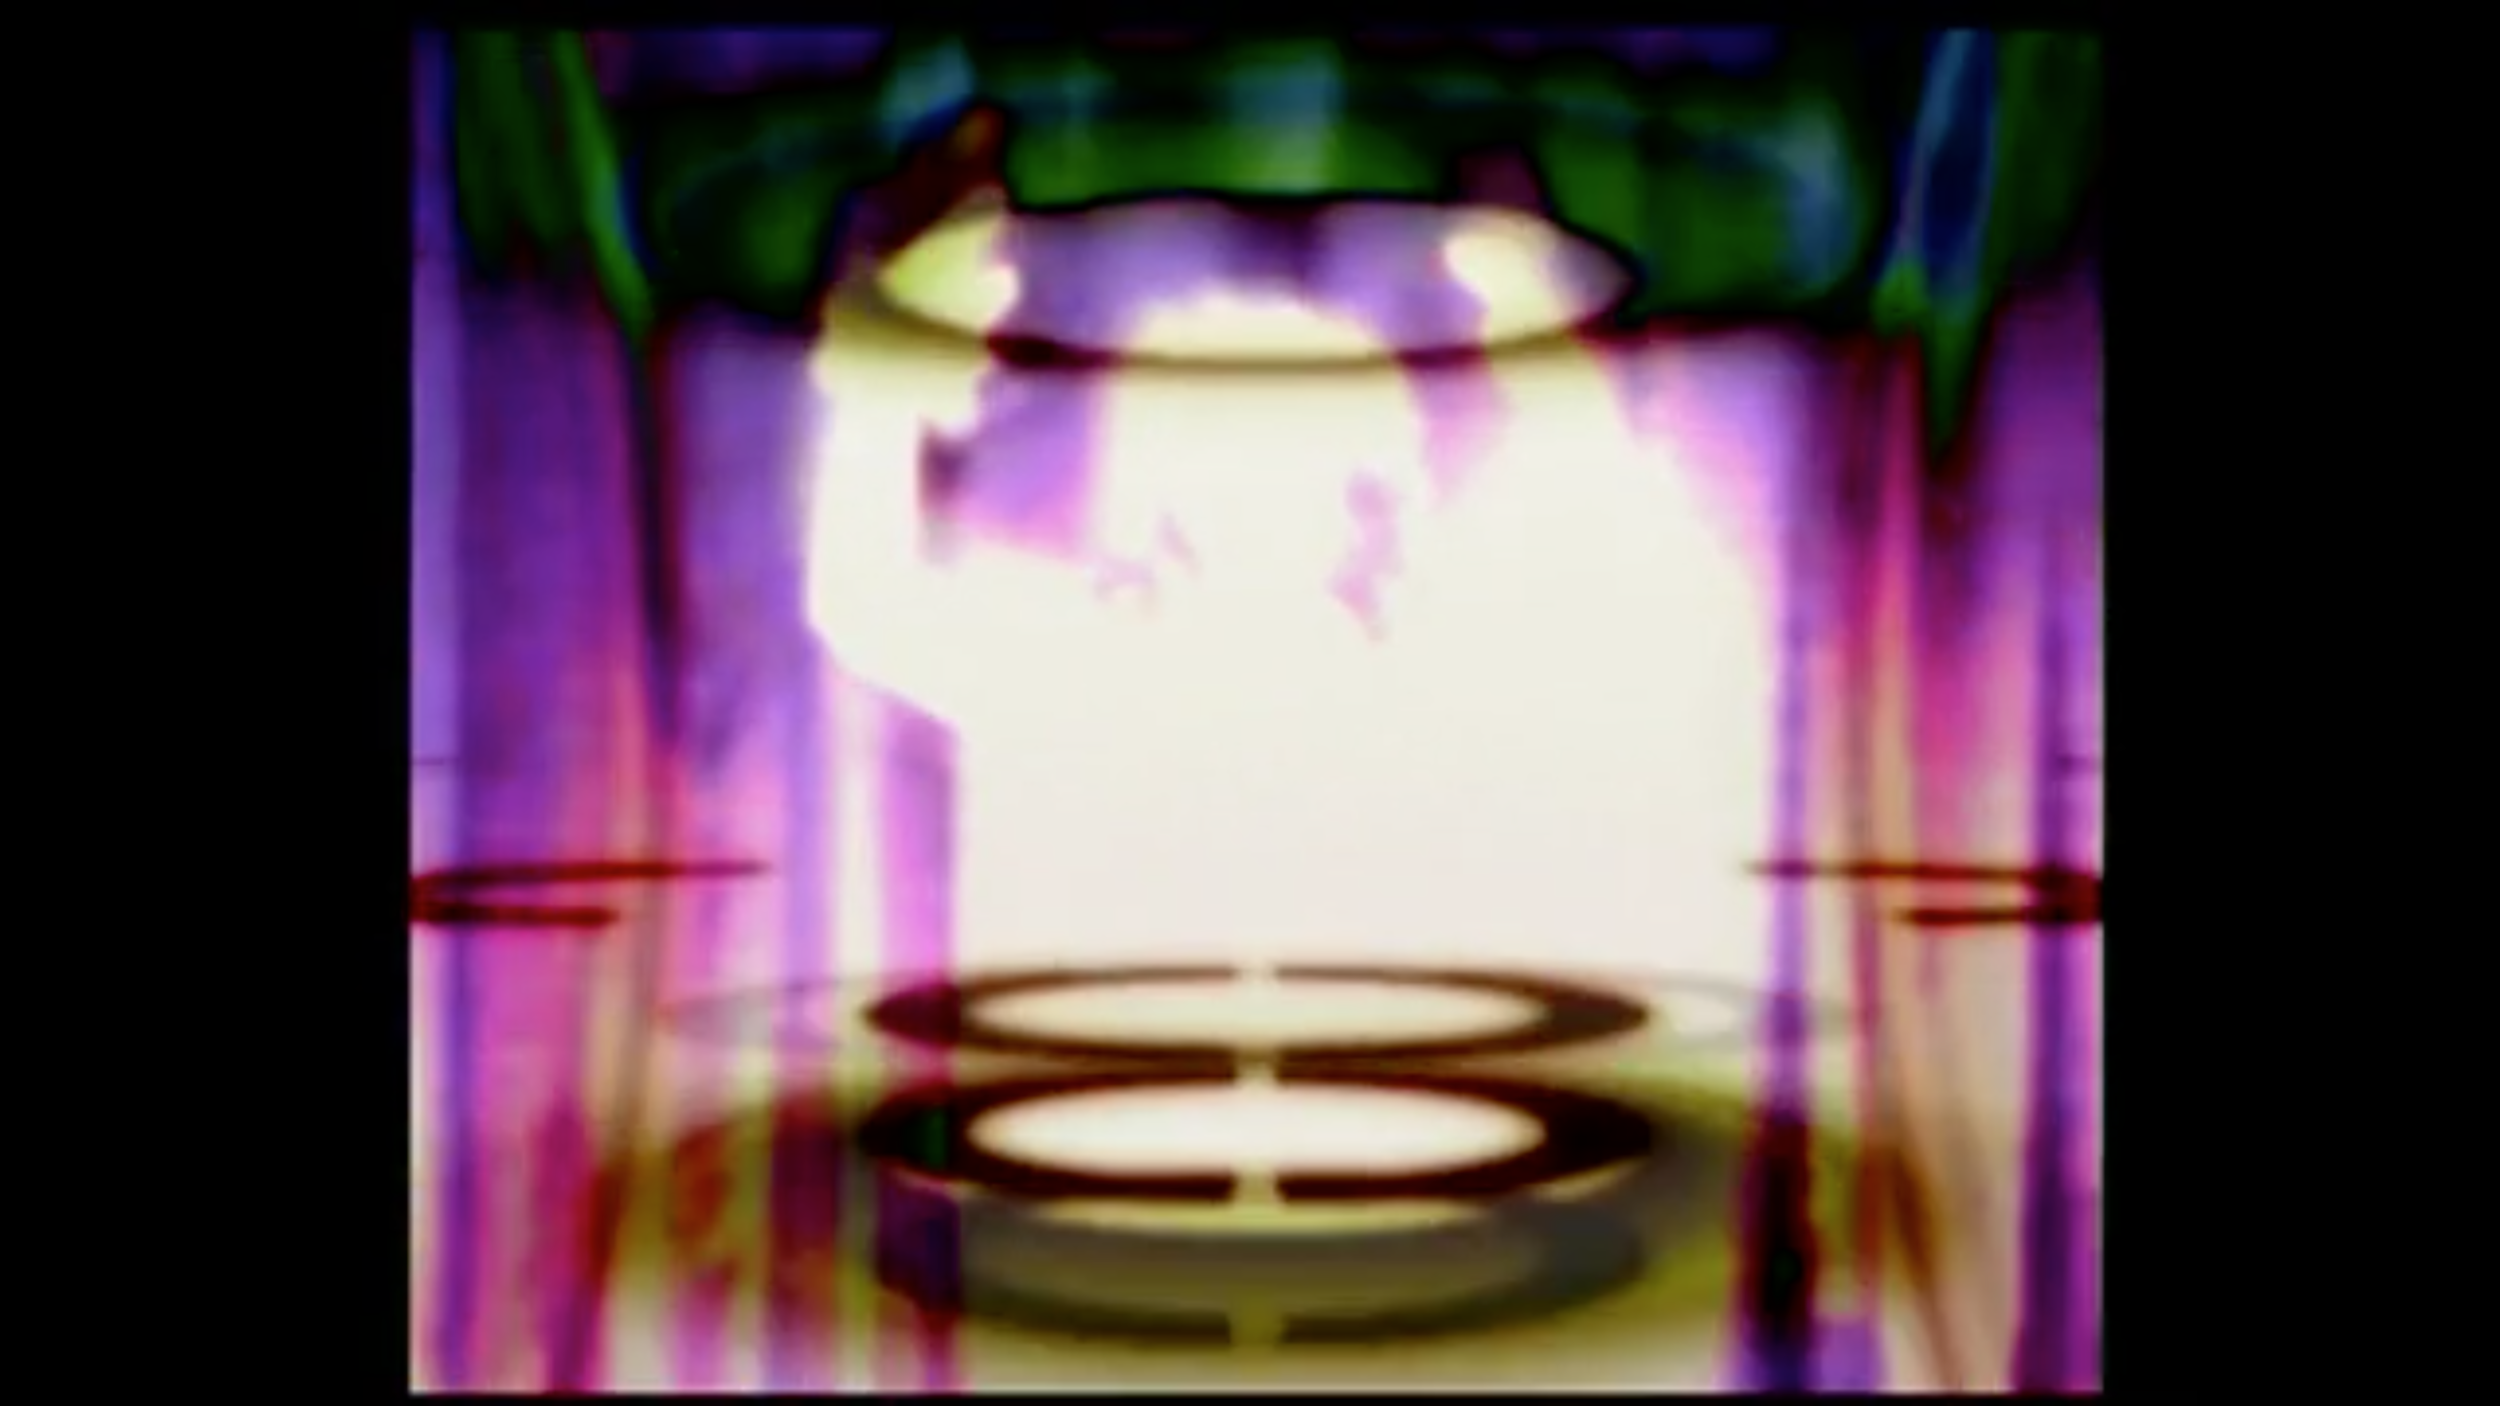 Amniotic_Time_04.png